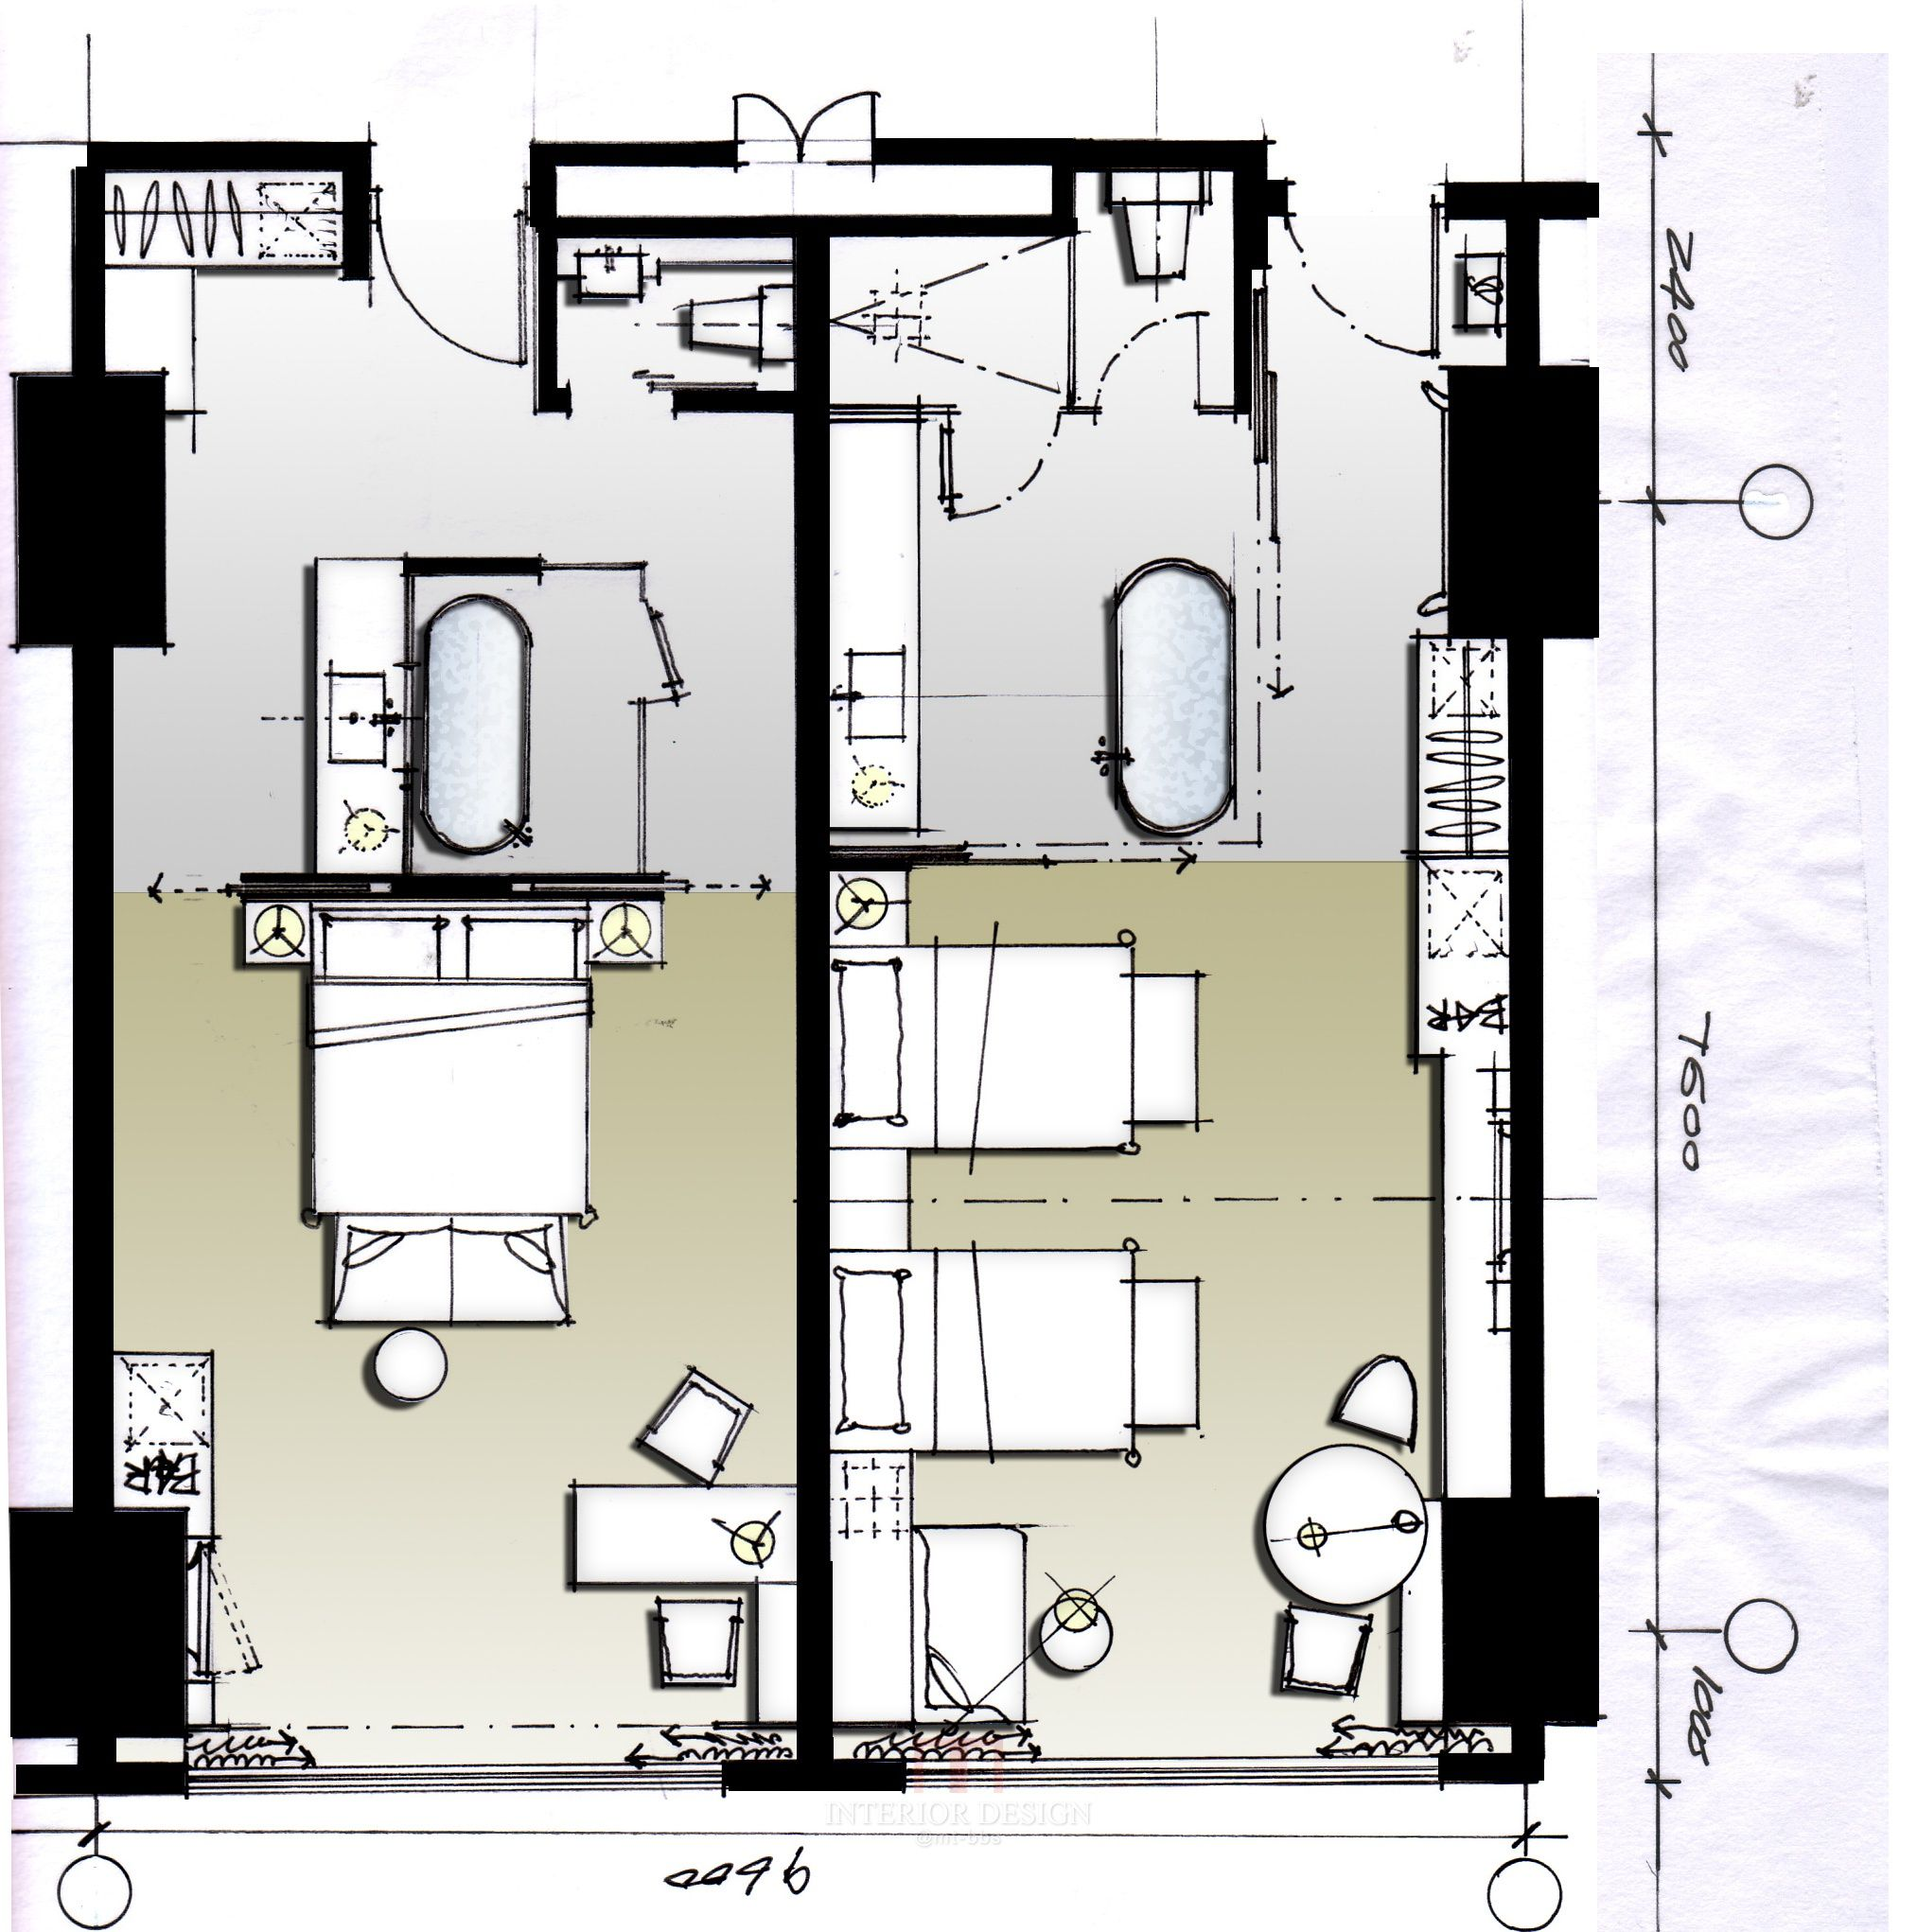 Hotel plan archtects pinterest room interiors and for Hotel design layout